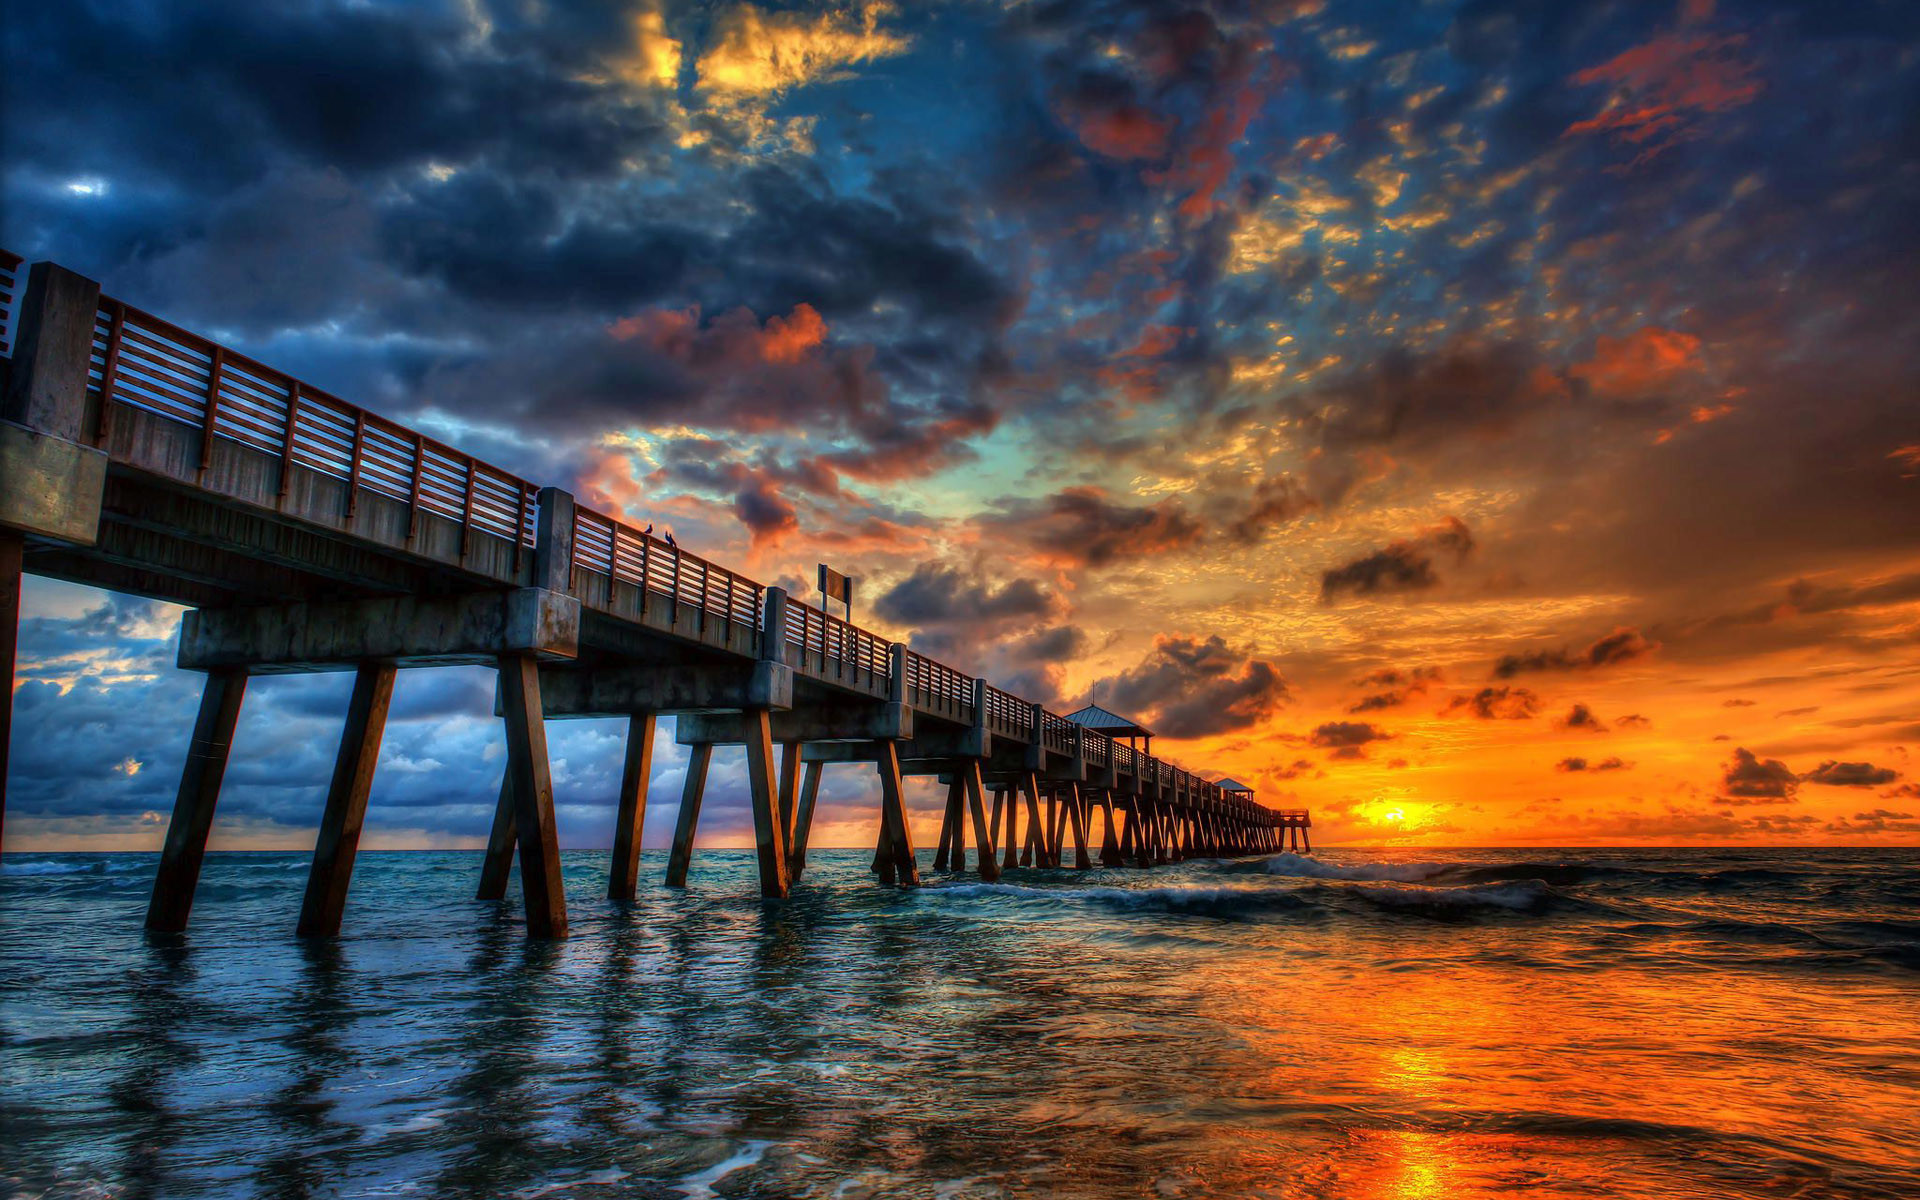 huntington beach wallpaper 66 images